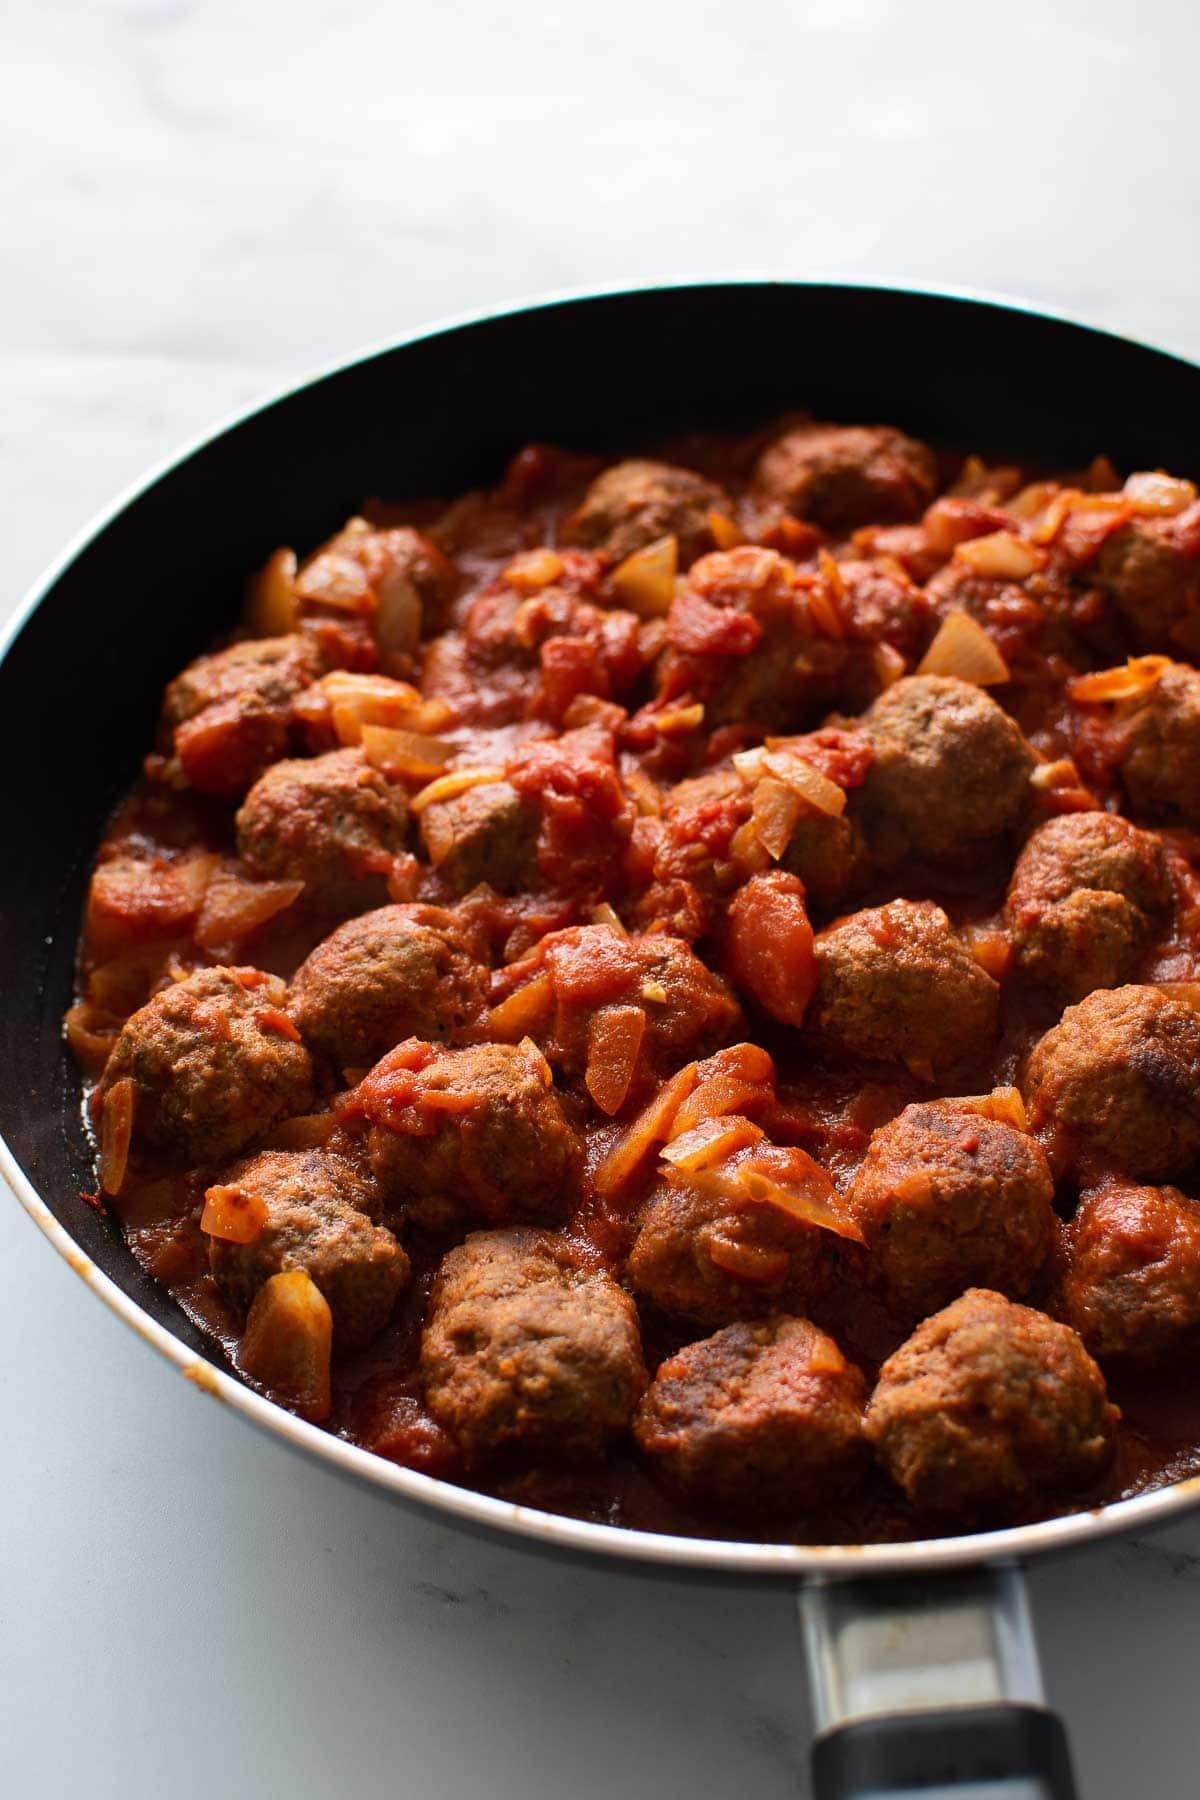 A skillet with Spanish meatballs.